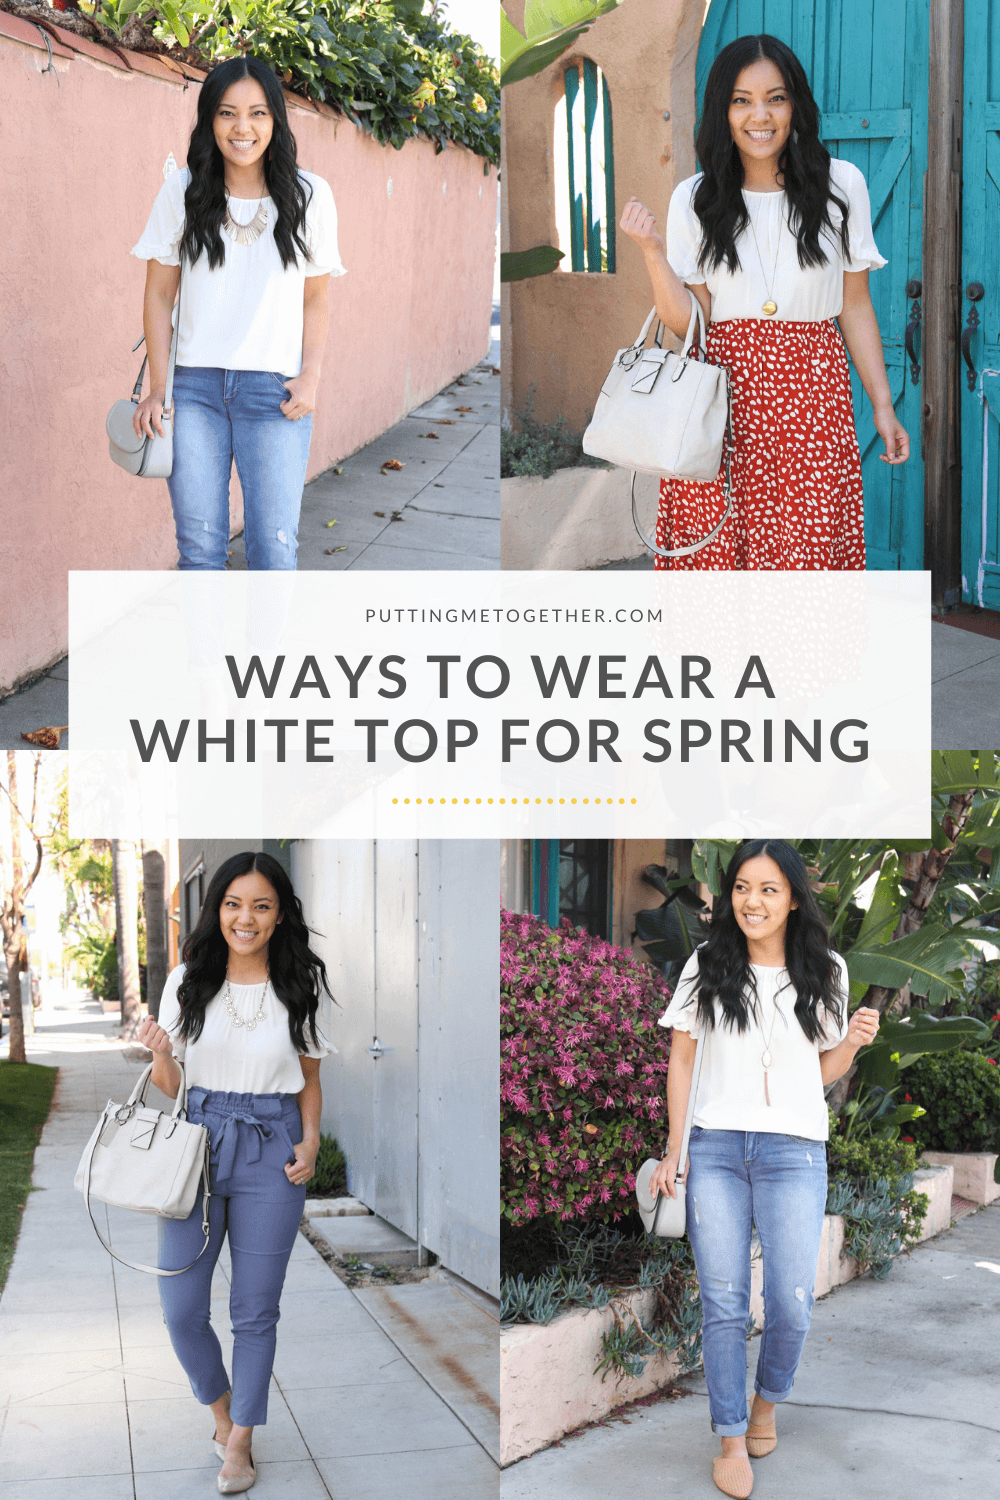 Different Ways to Wear a White Top for Spring